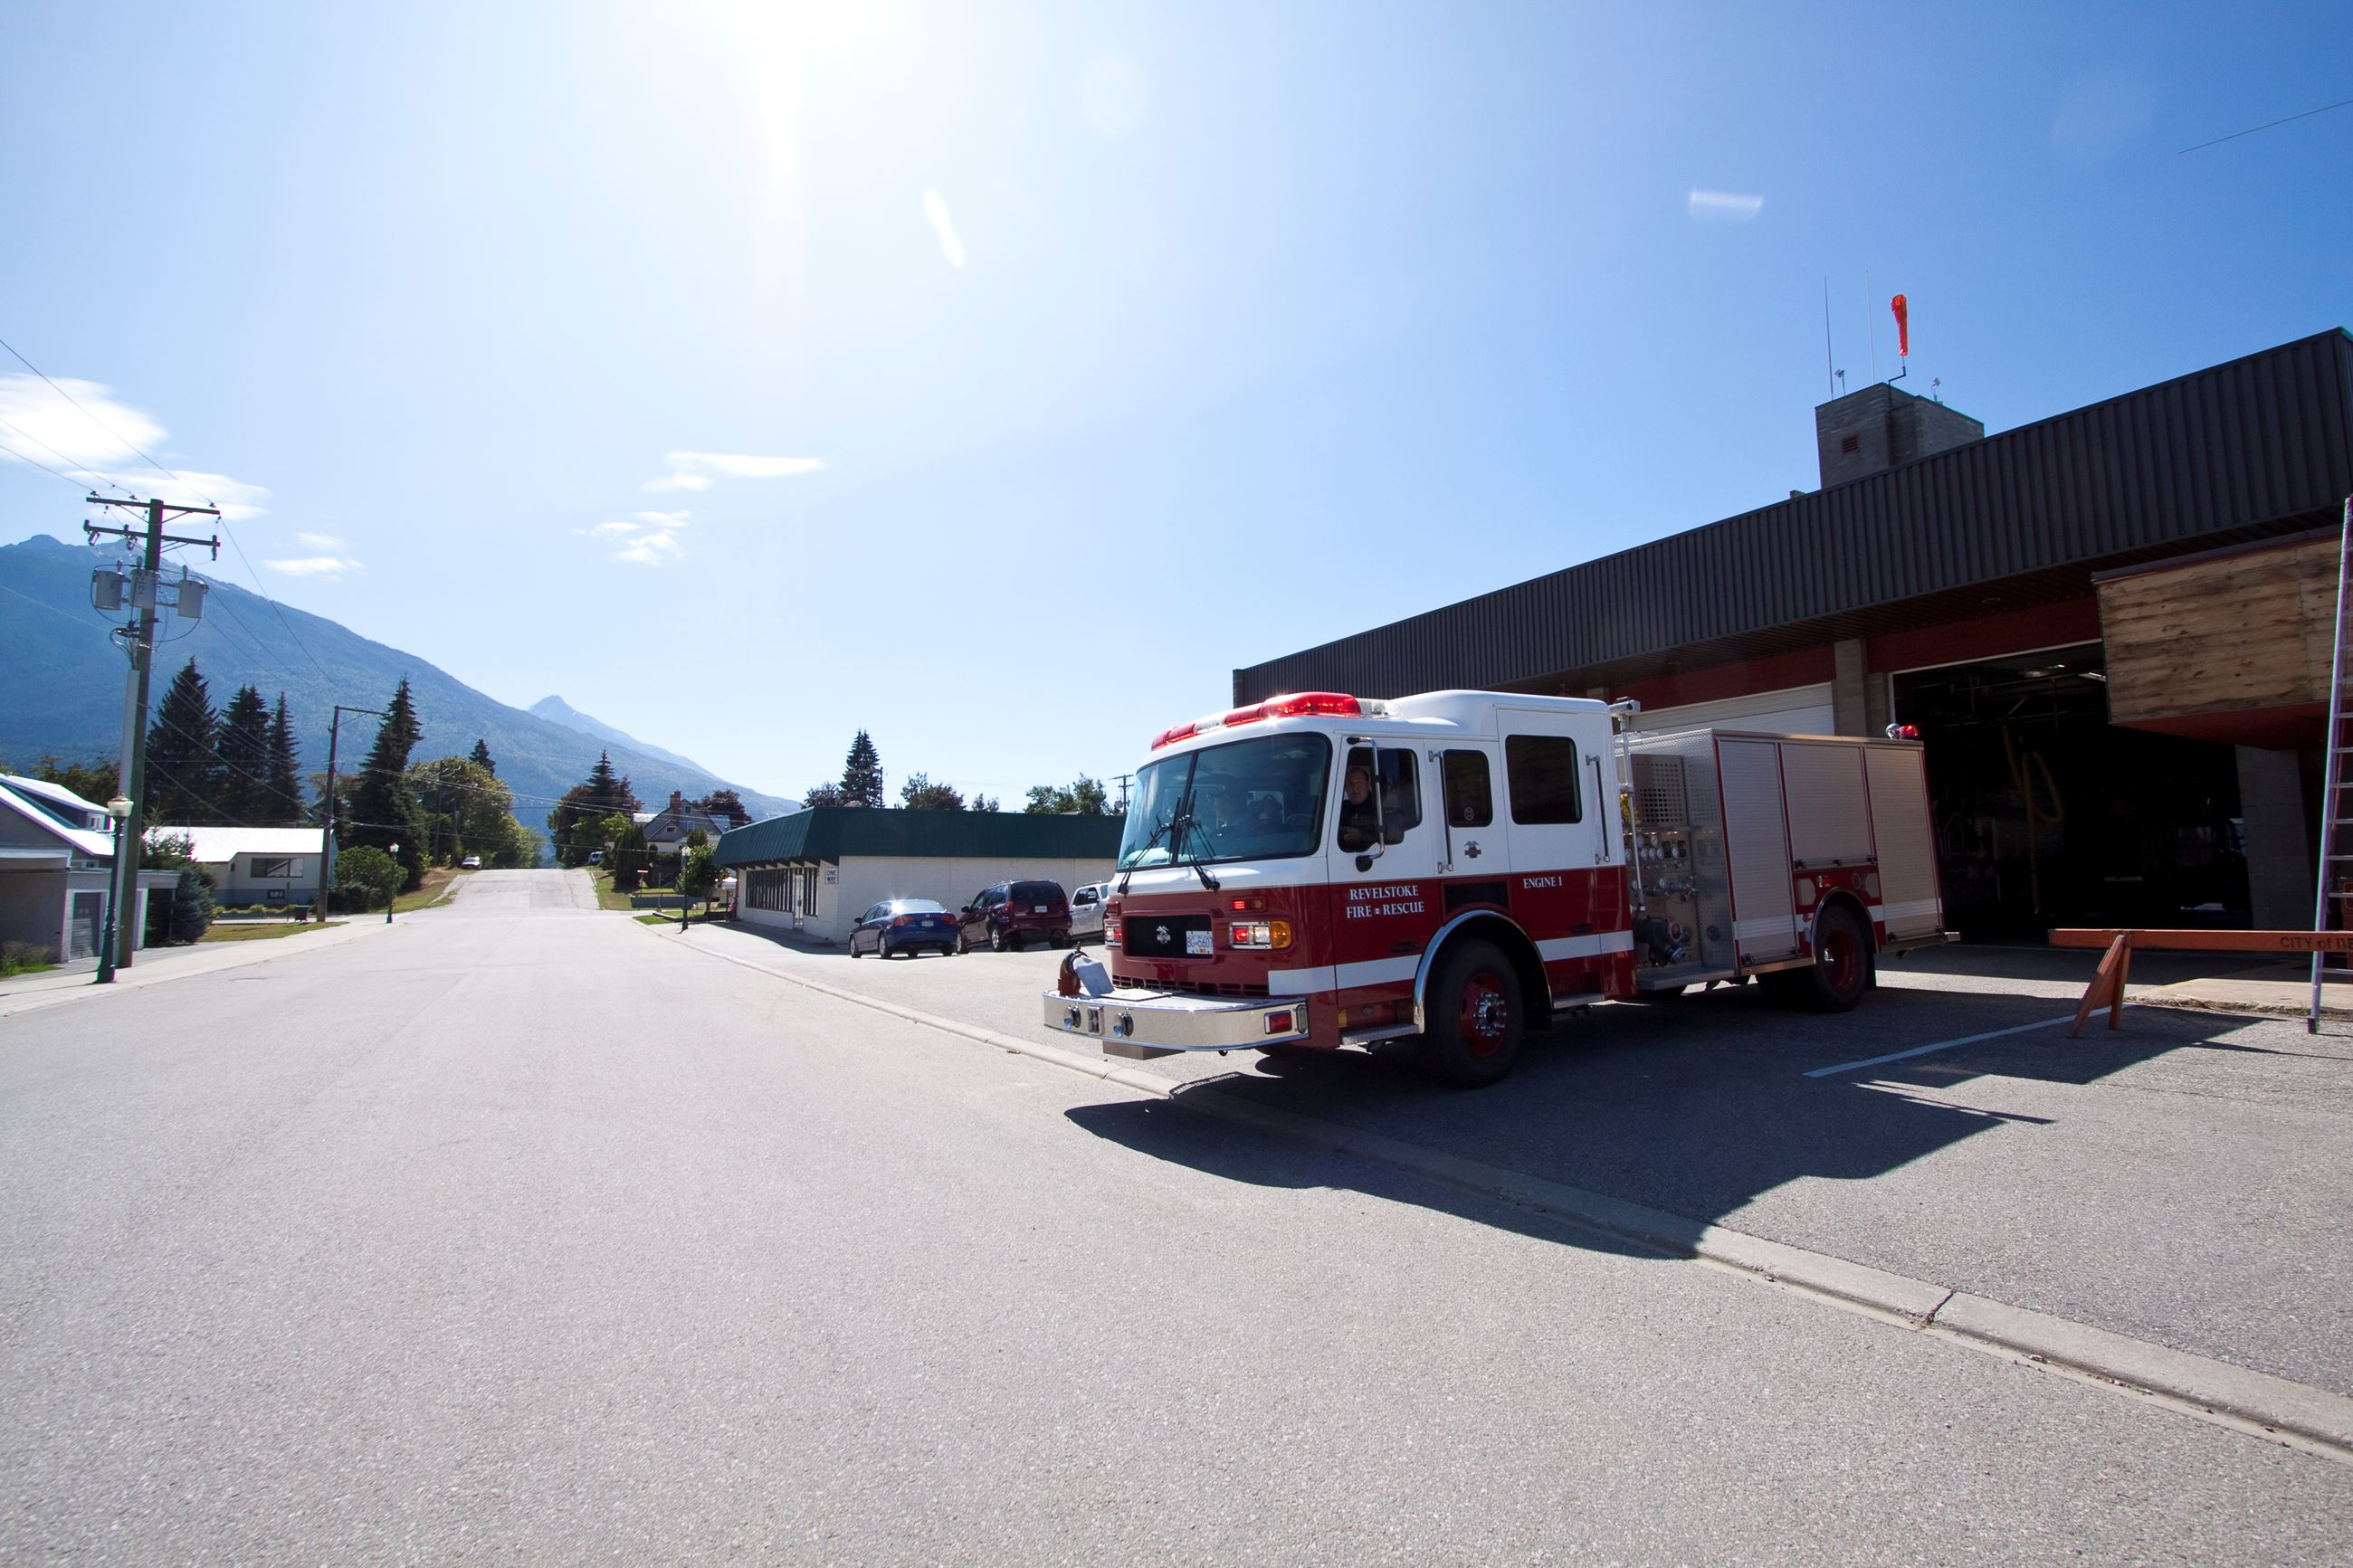 Fire Hall and Truck